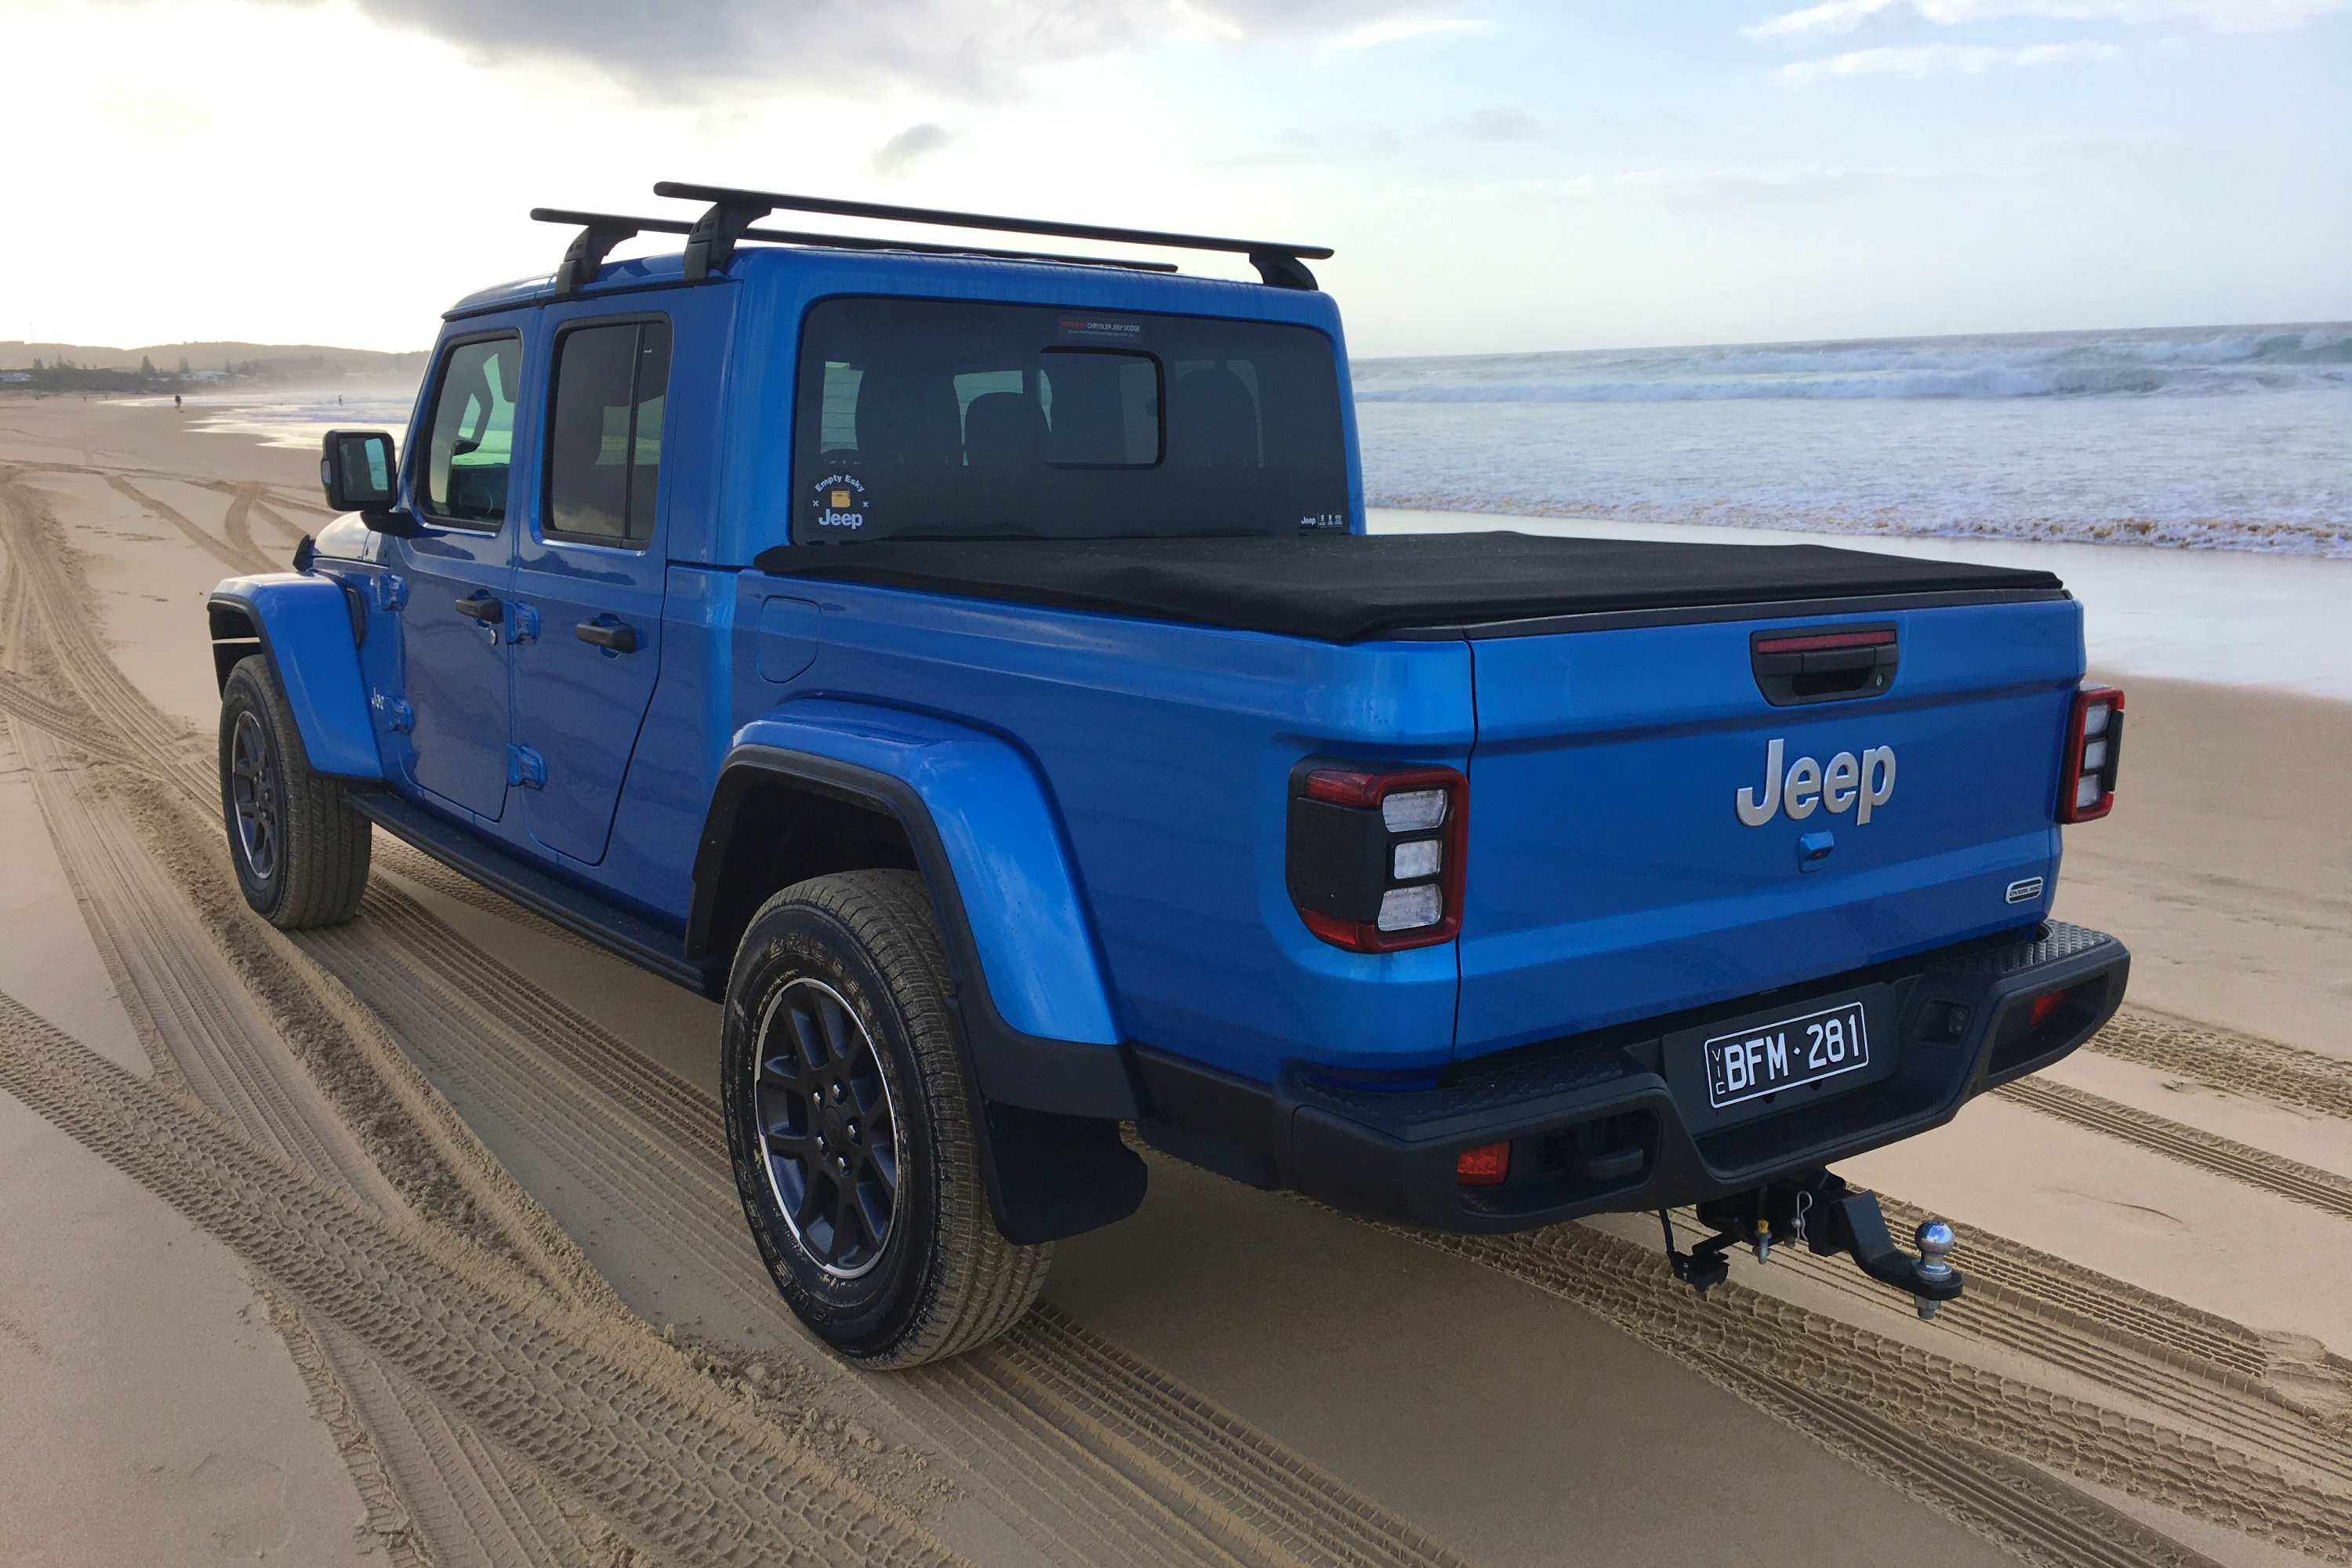 Jeep Gladiator Overland 4WD Ute rear